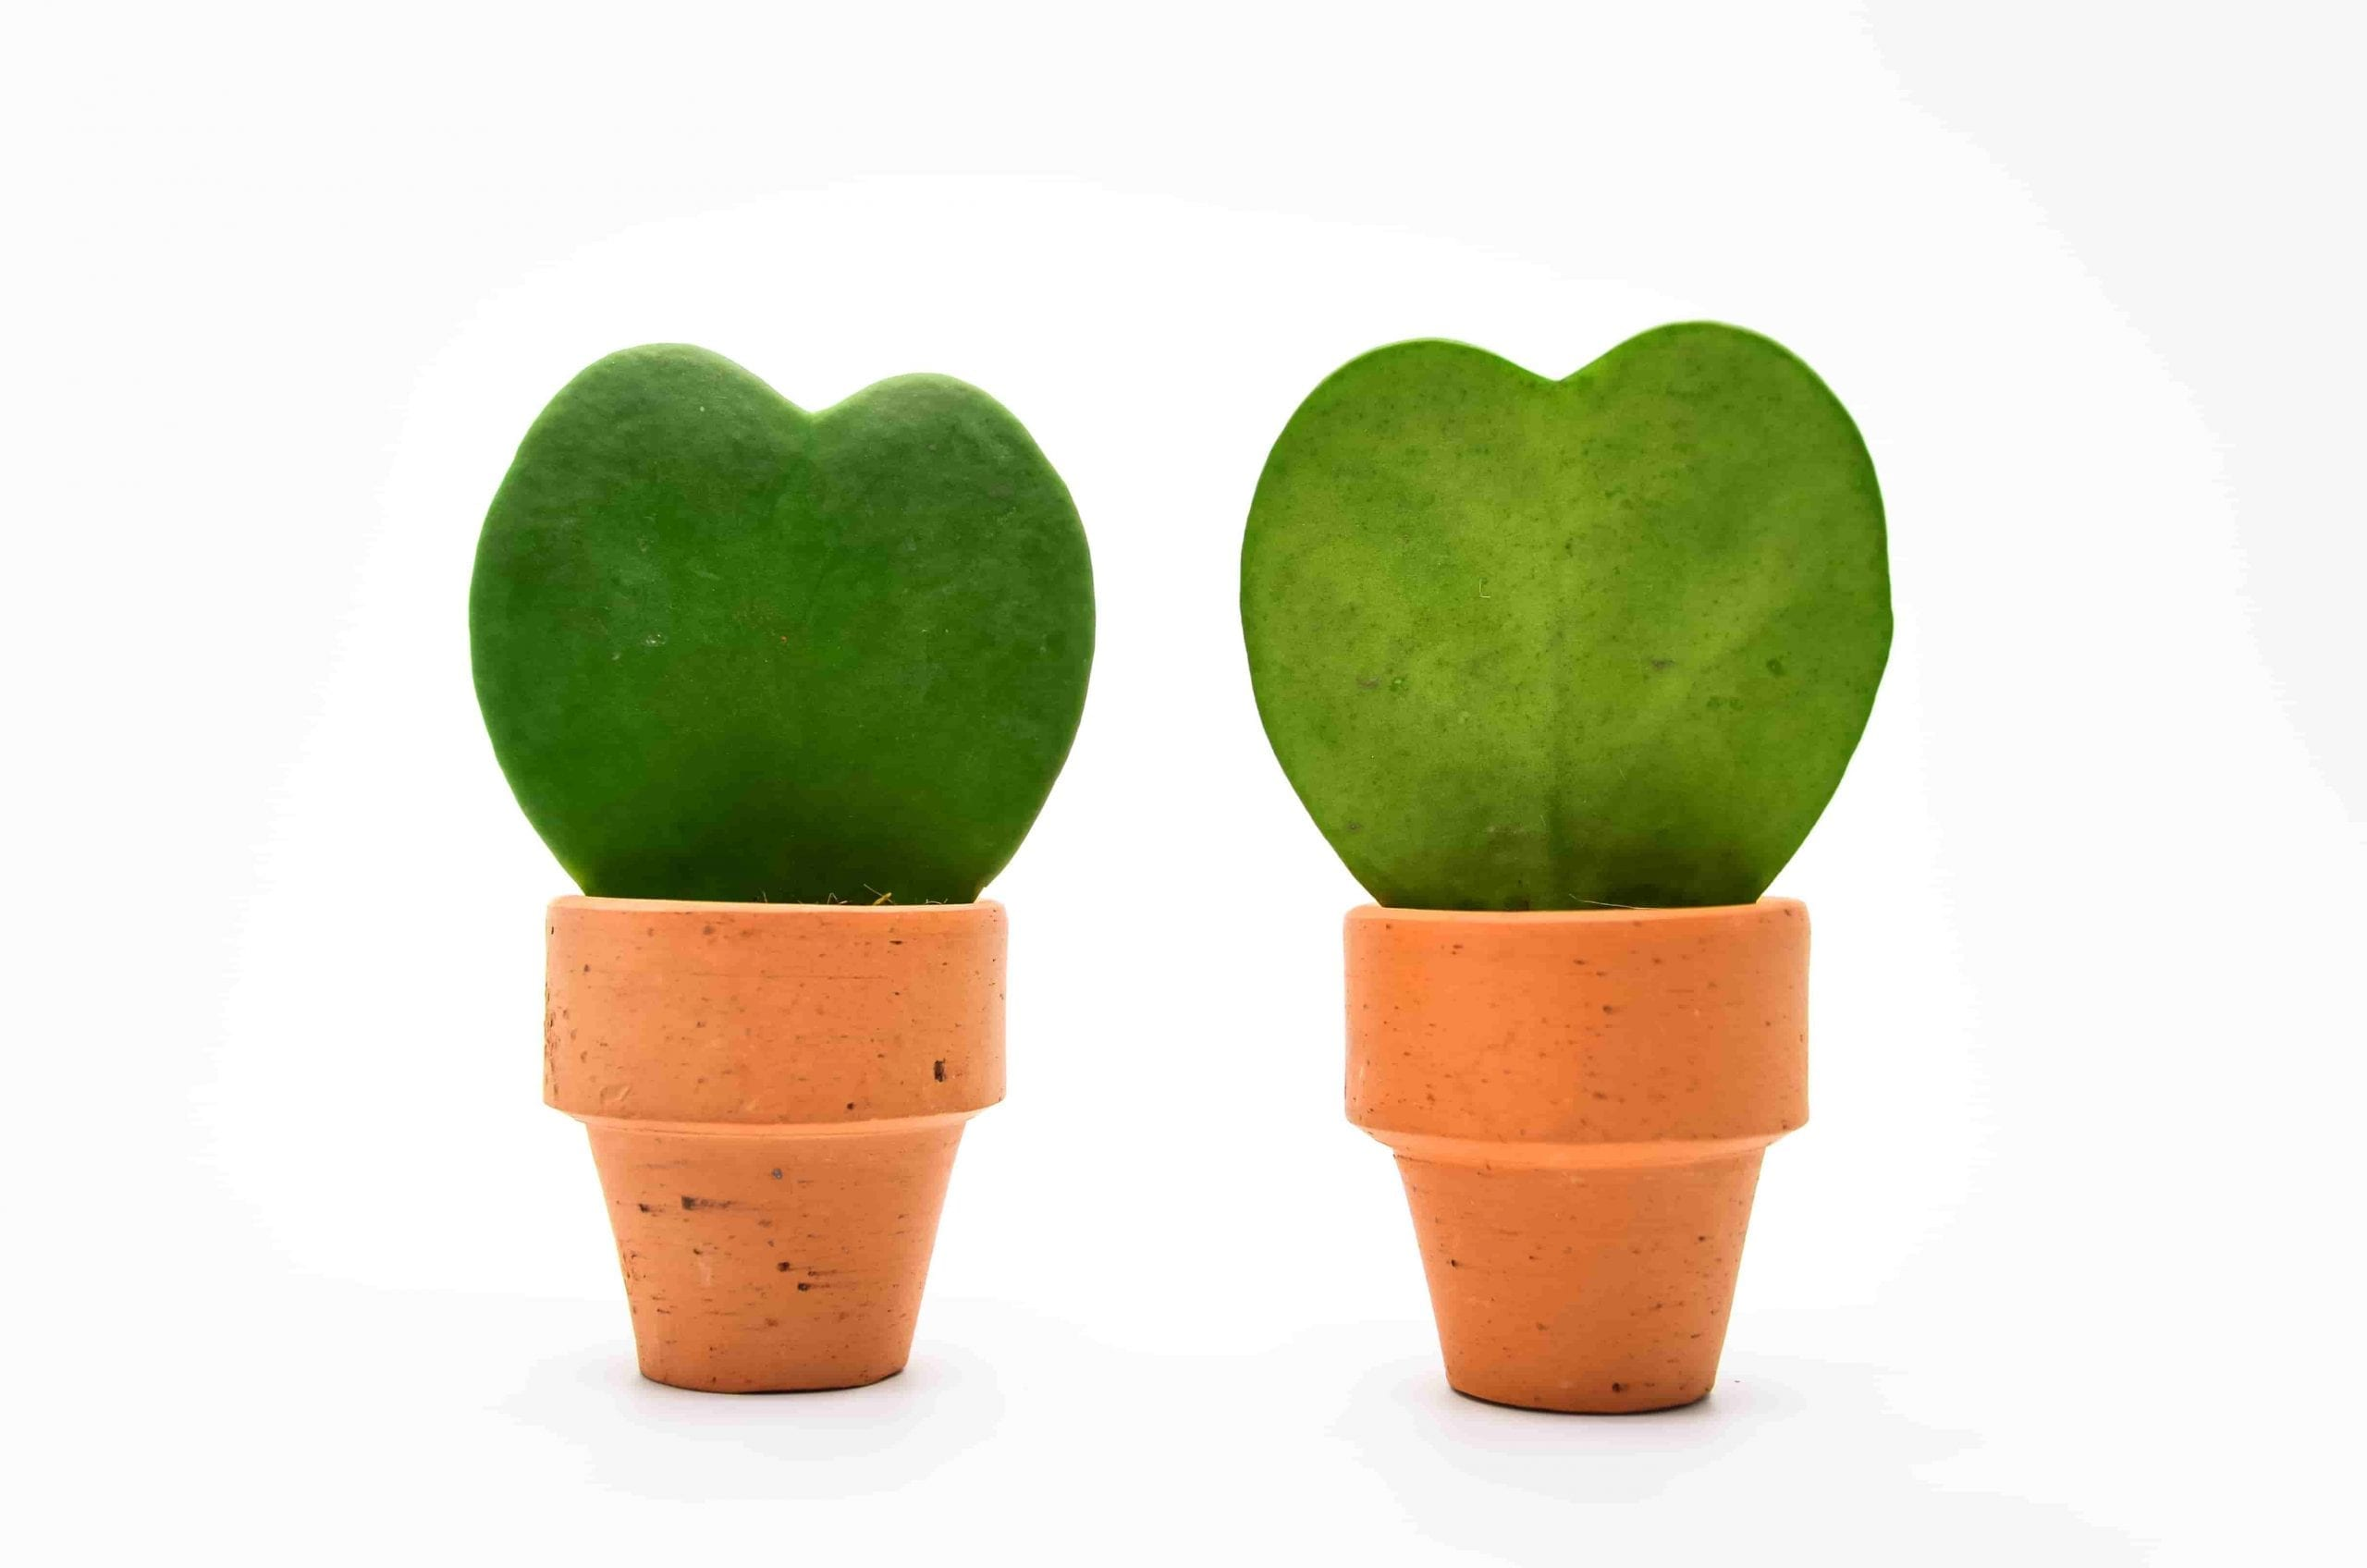 Heart Hoya leaf in small pot for Valentine's Day